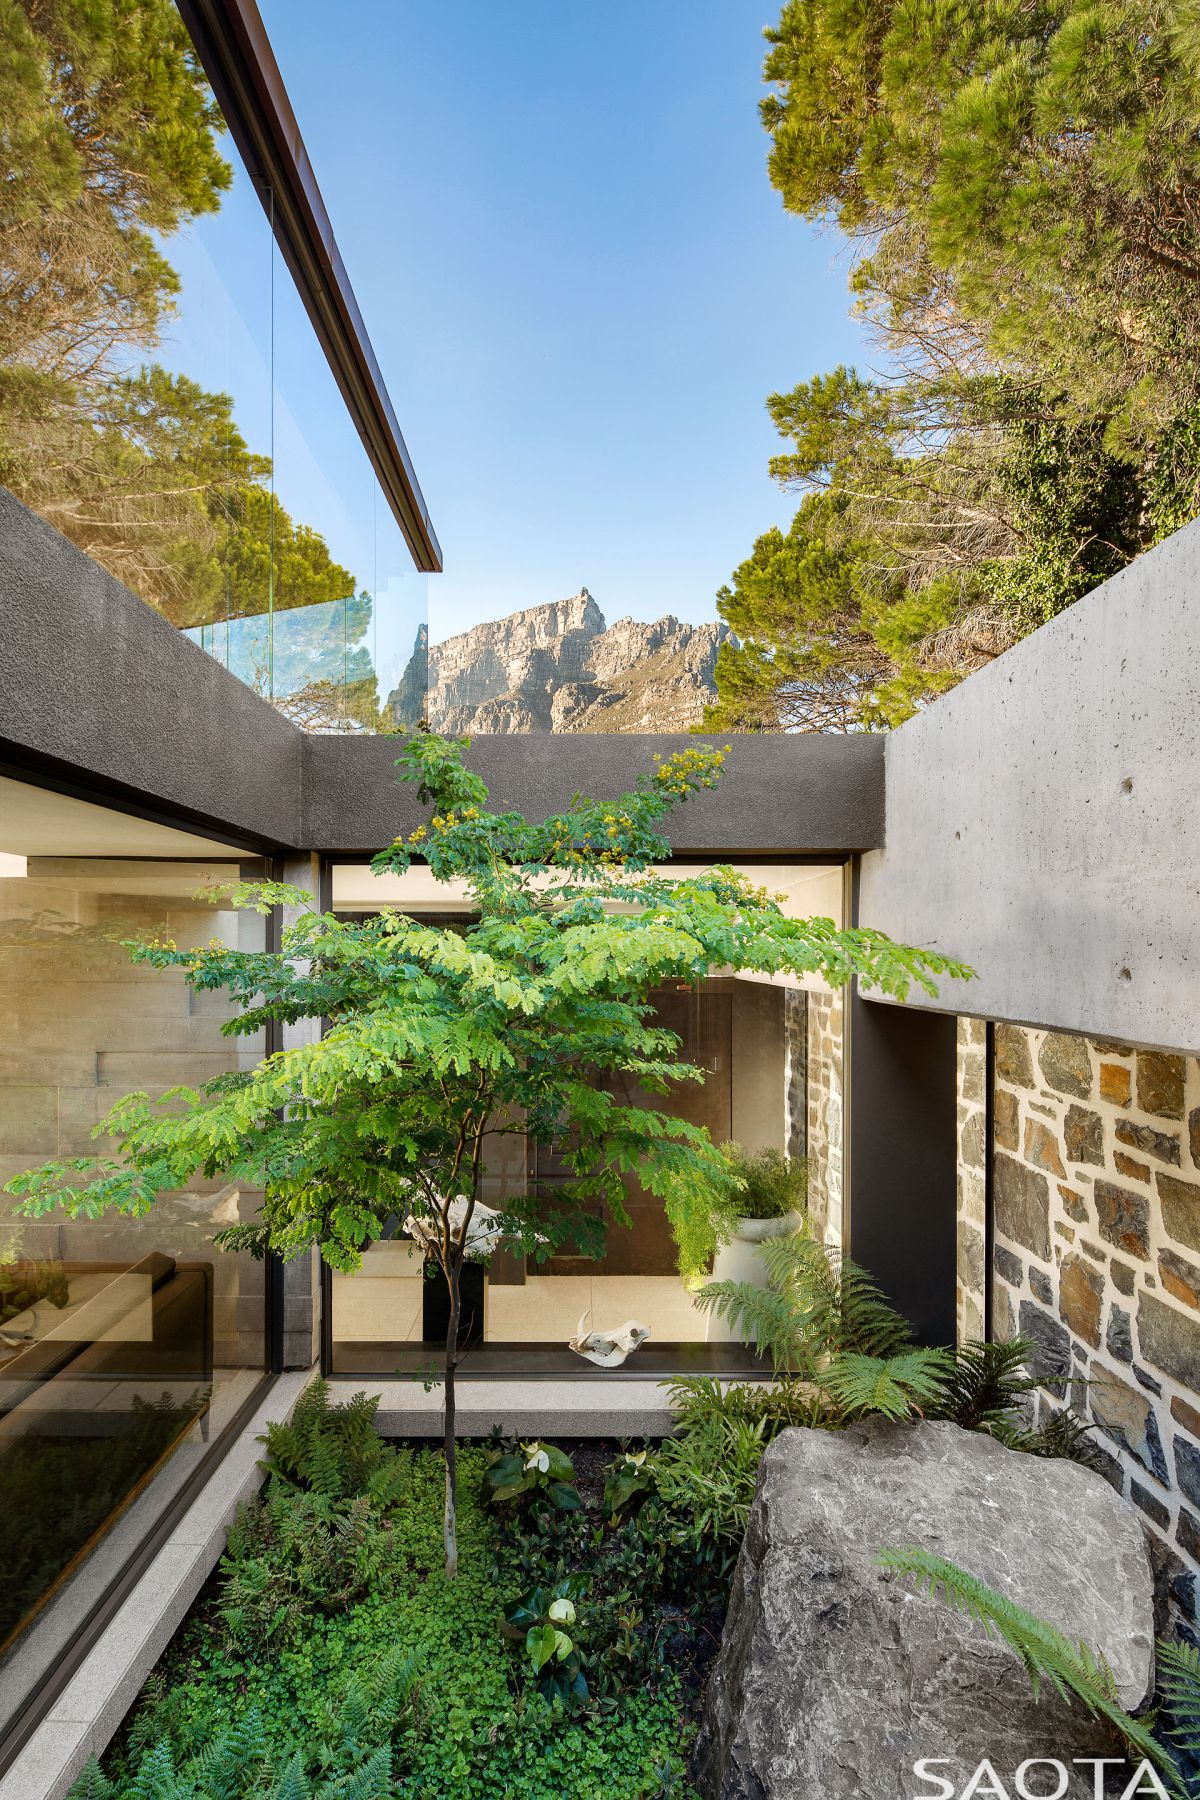 A secret courtyard is contained between the house and the stone wall. It's the link between the internal areas and the outside world